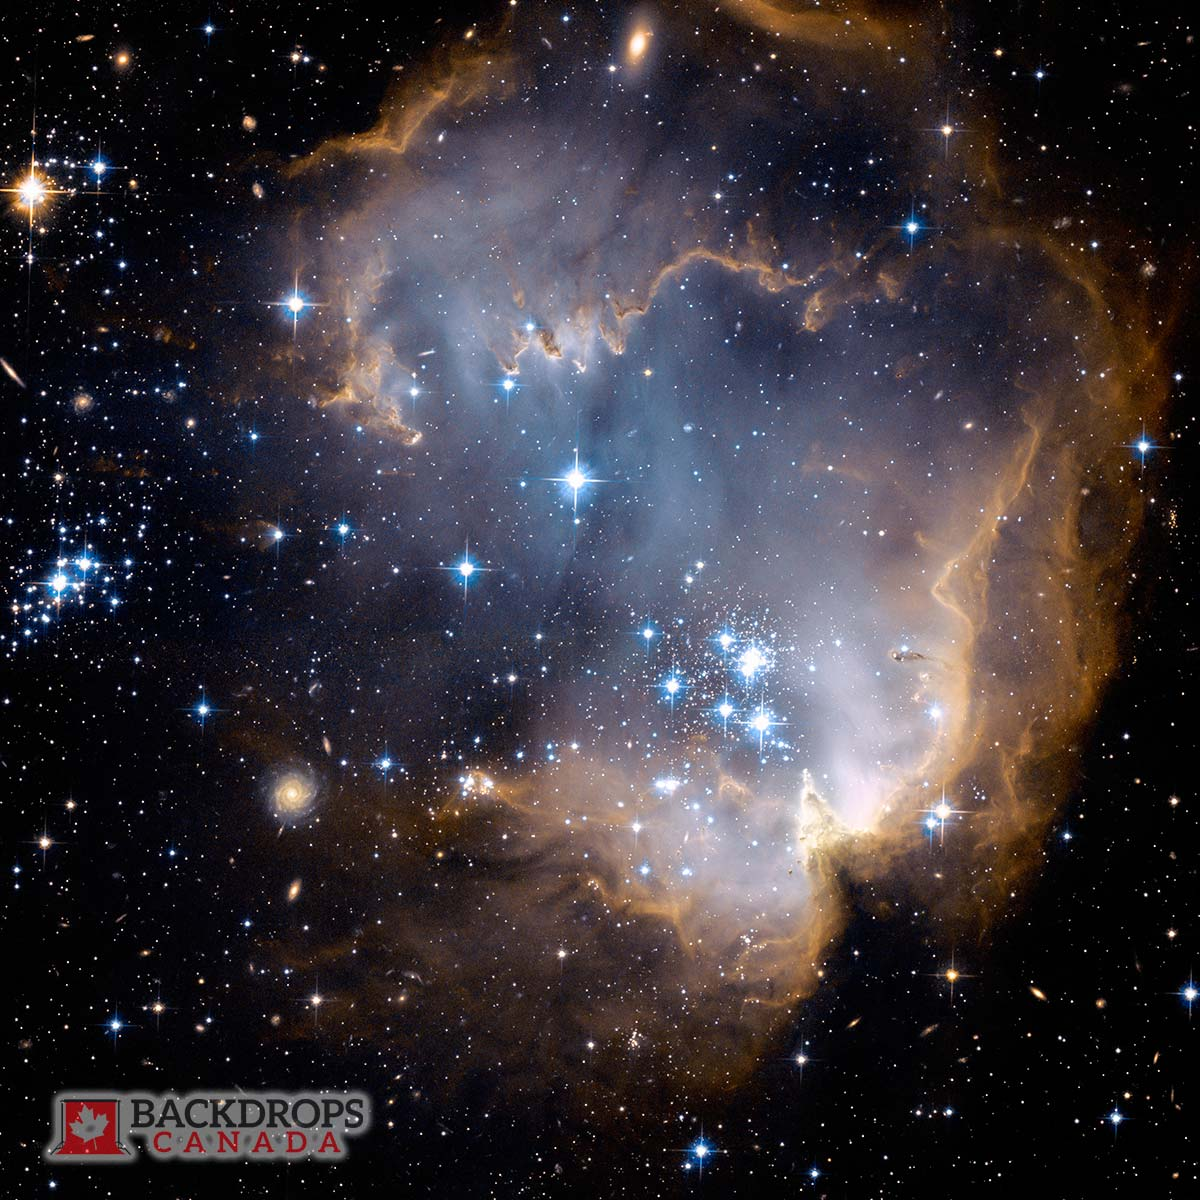 Galaxy Space Photography Backdrop